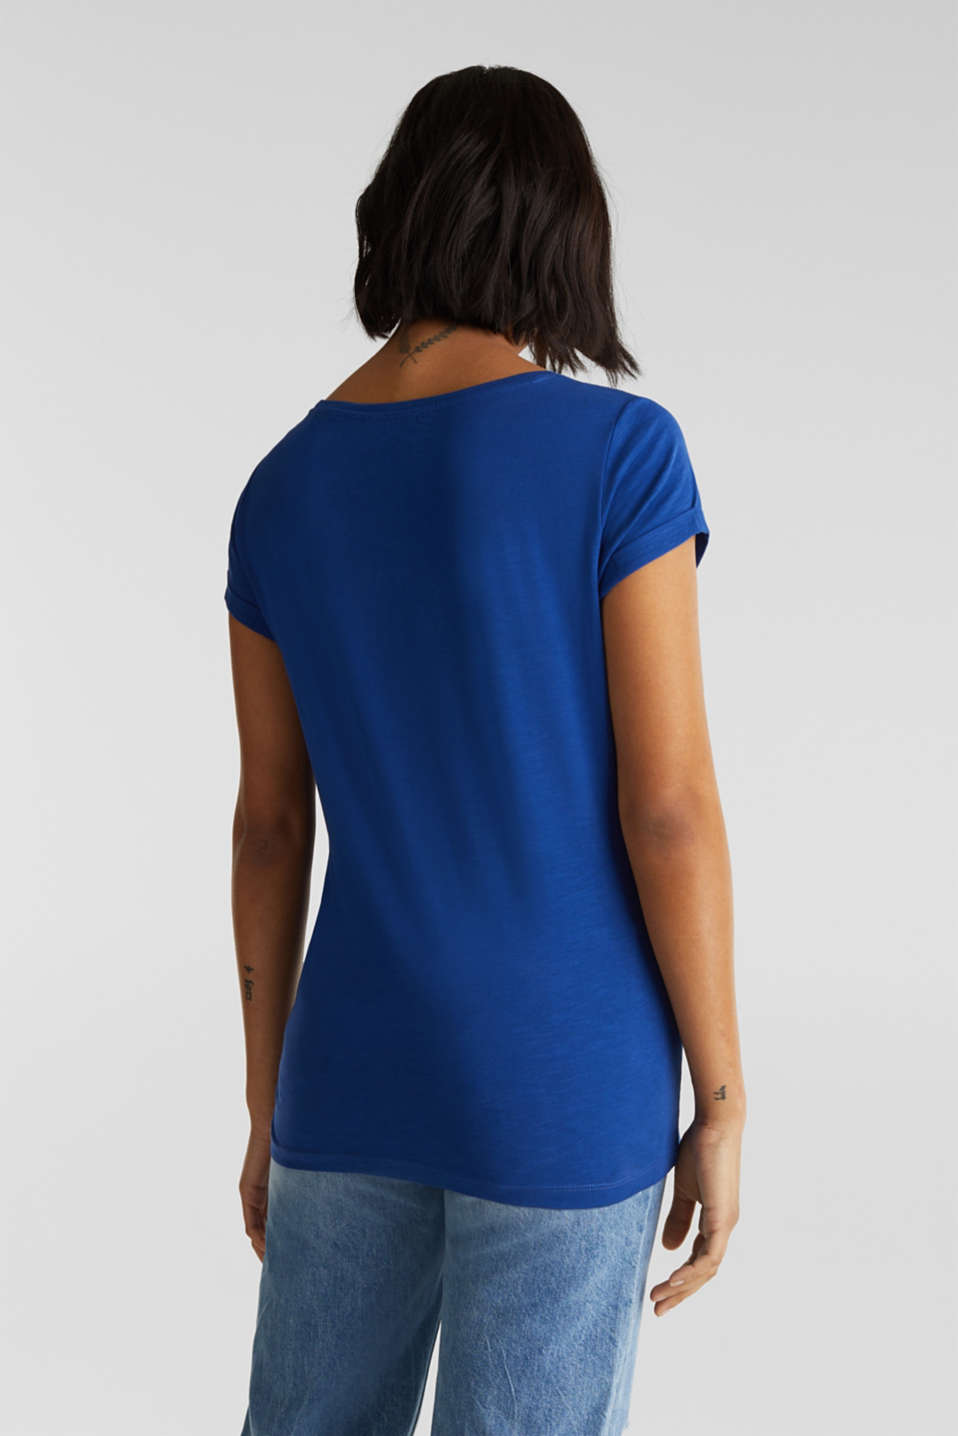 Top with a slub texture, 100% cotton, INK 4, detail image number 3